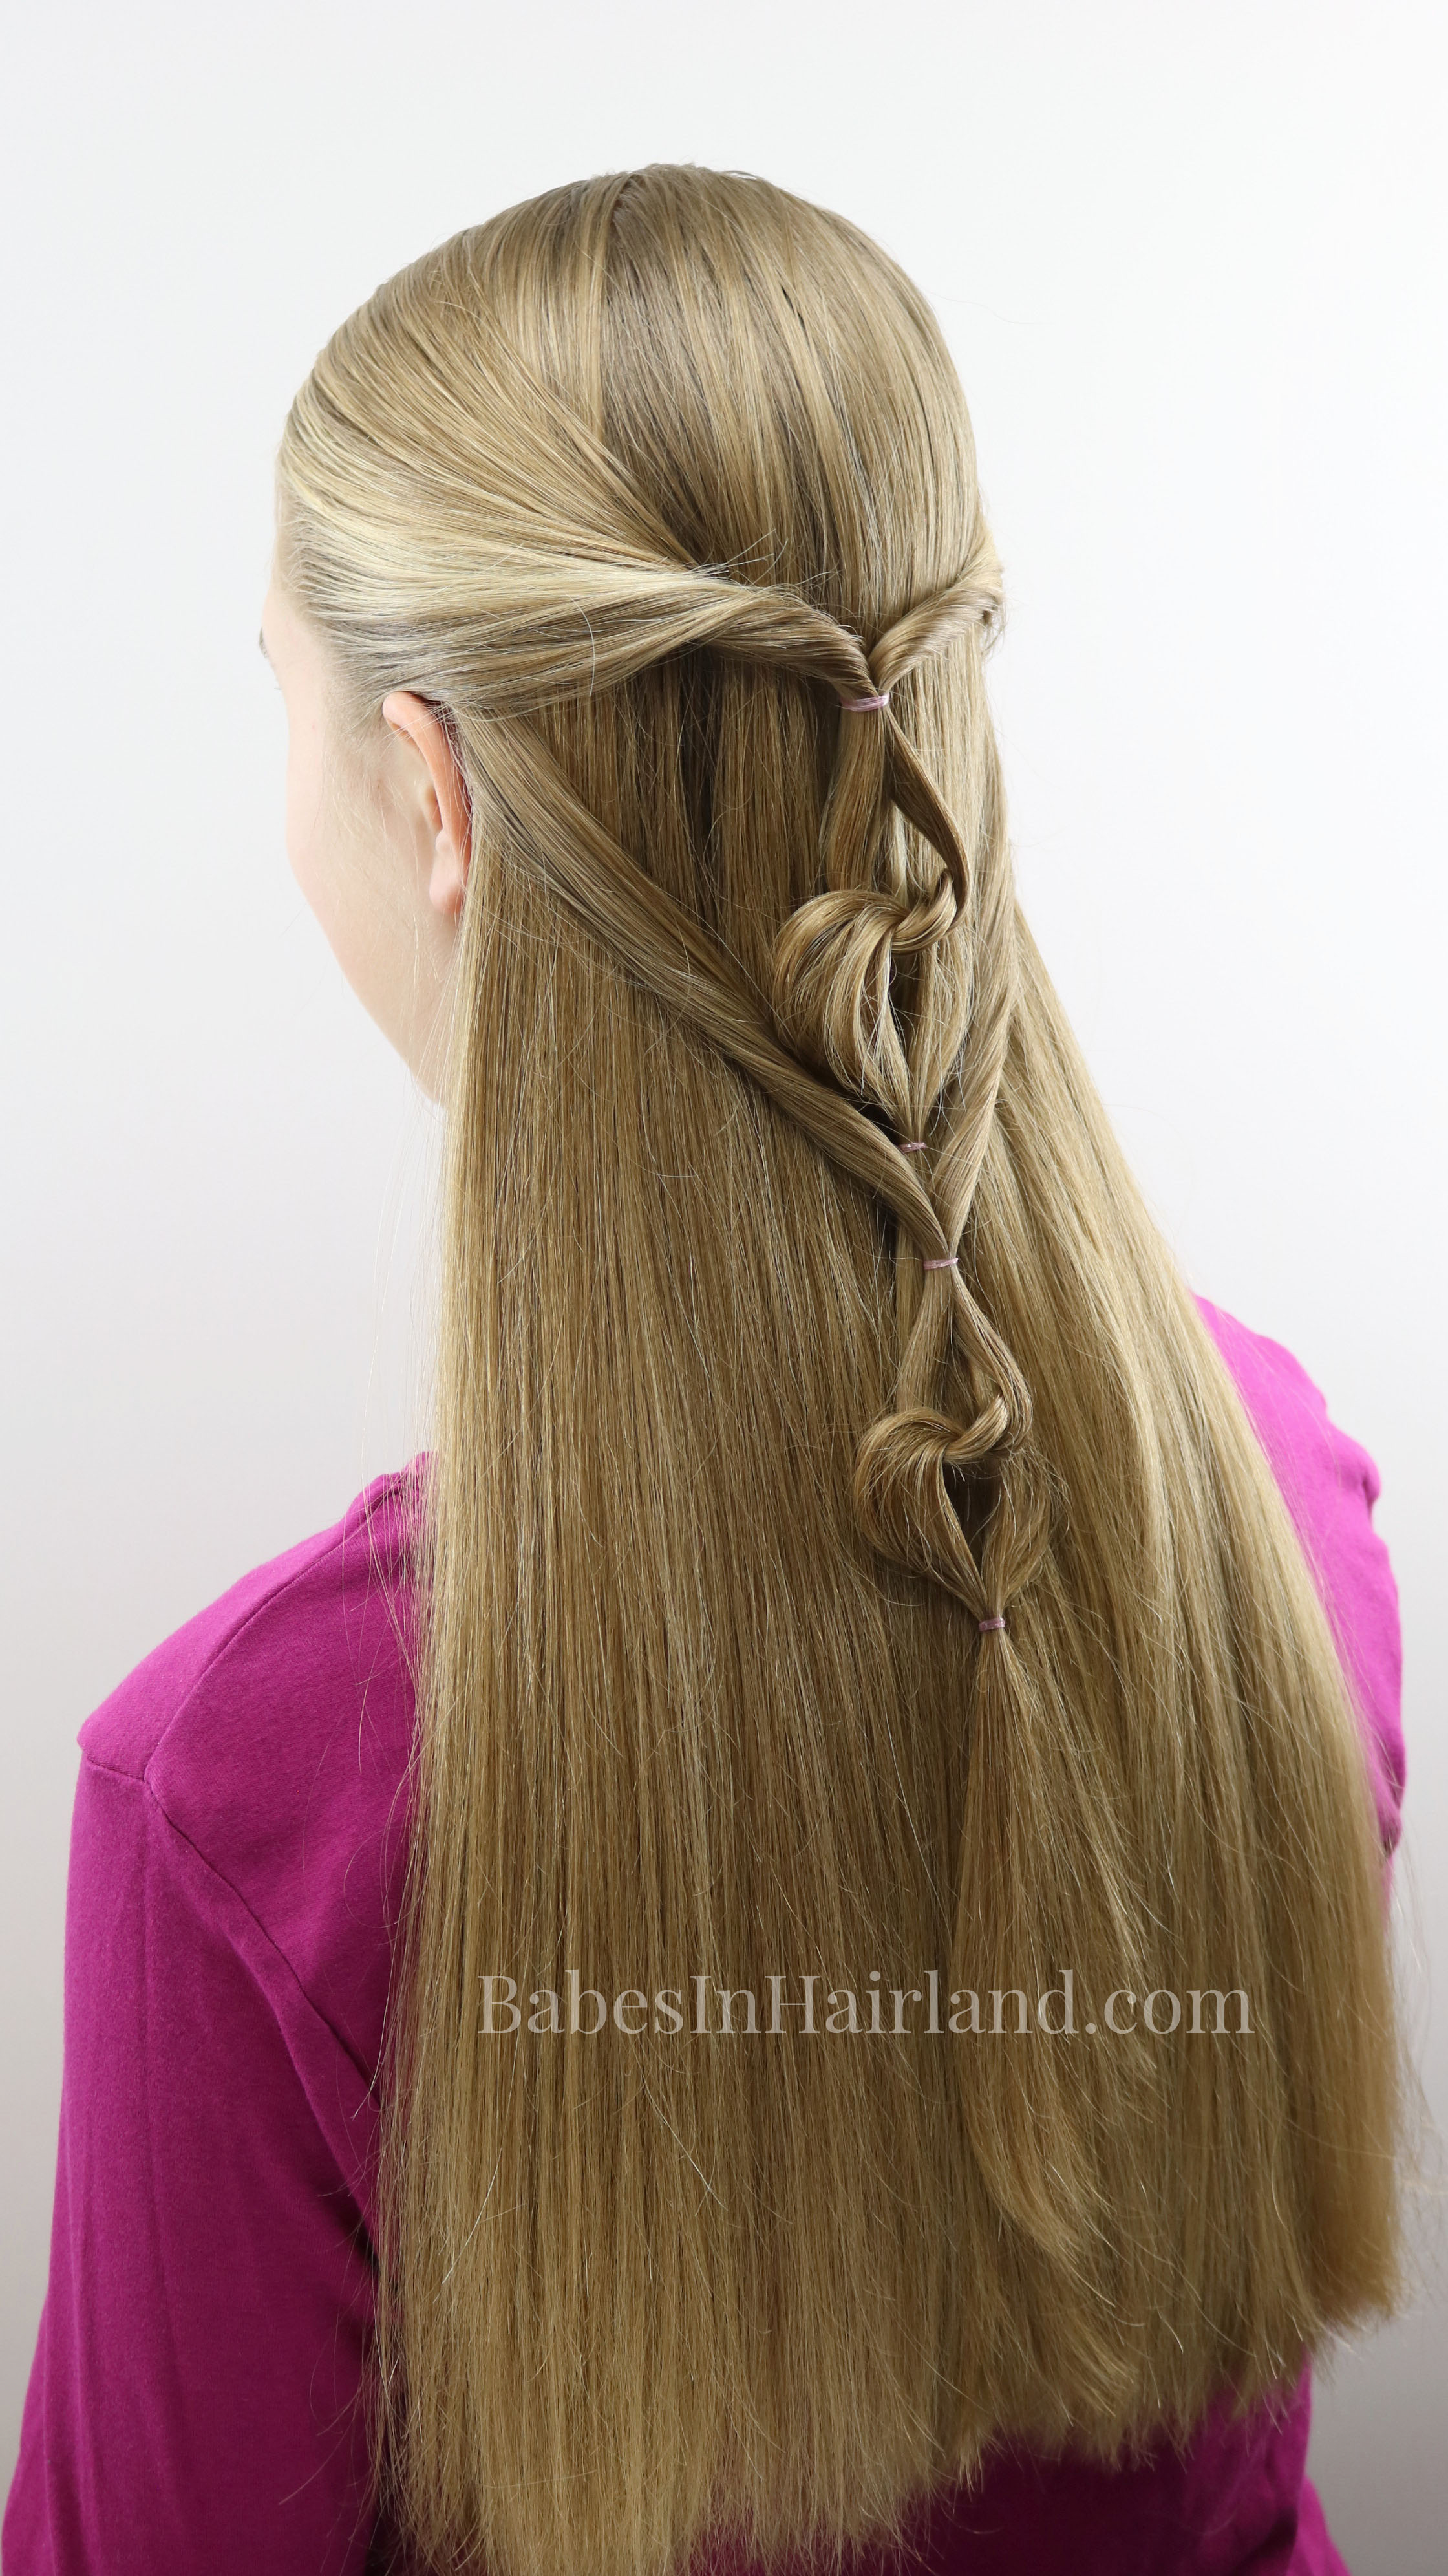 Love Is In The Hair With This Cute Valentineu0027s Day Hairstyle From  BabesInHairland.com.